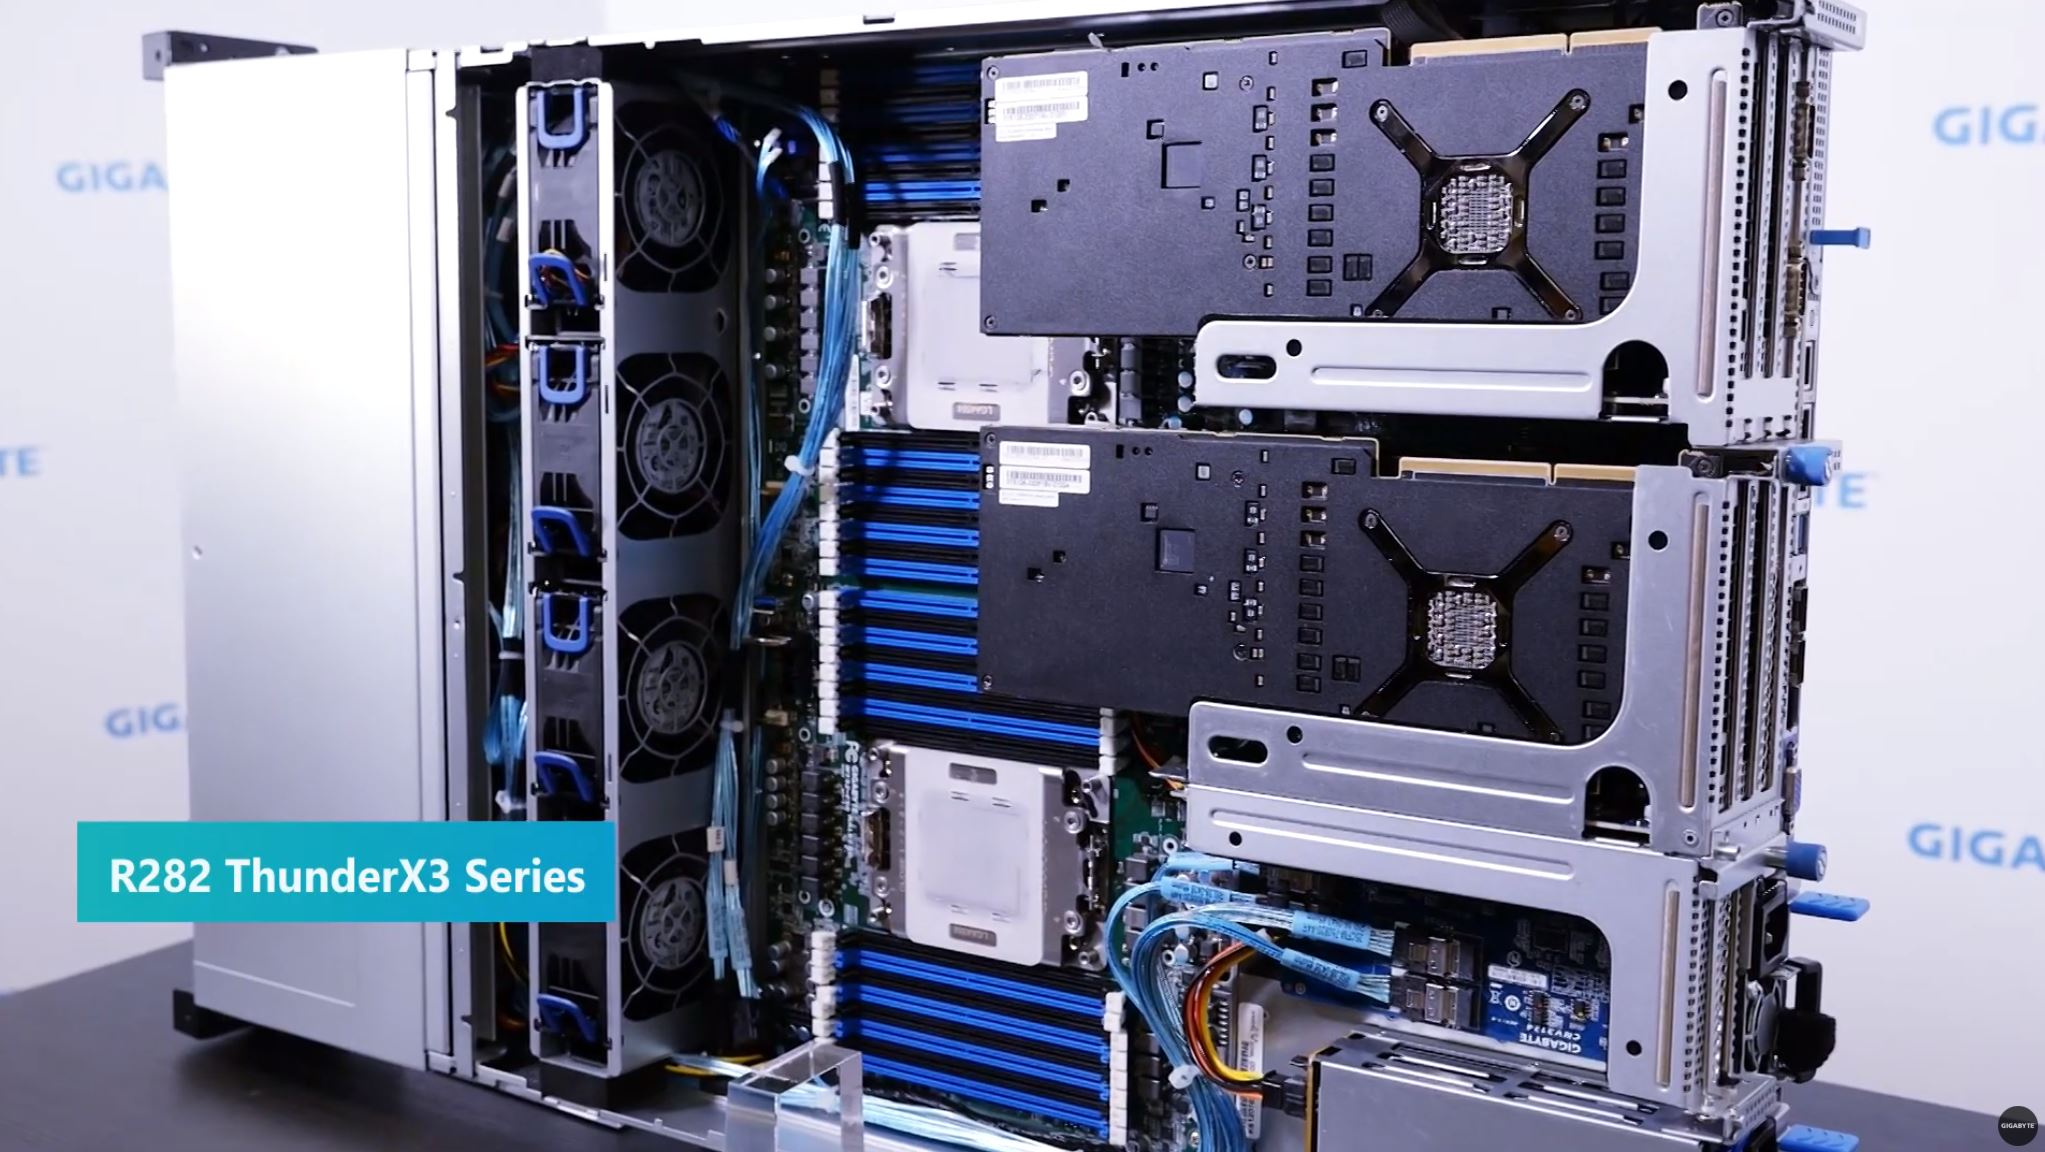 Gigabyte R282 ThunderX3 Series Overview